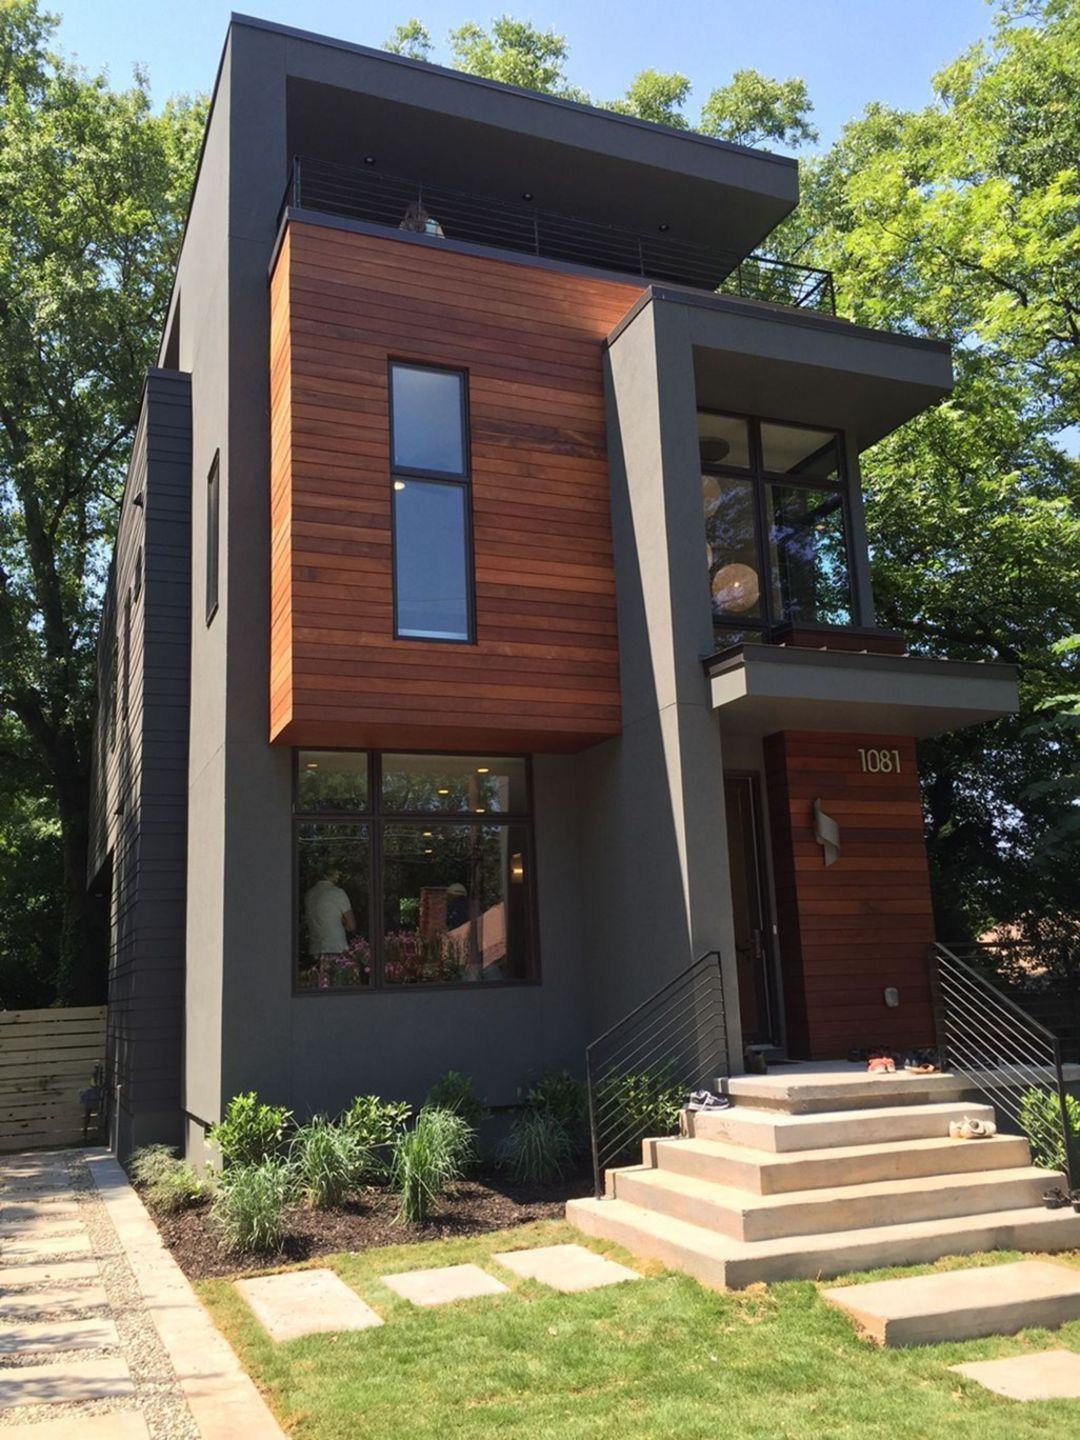 20 Best Modern Tiny Houses Design Ideas For Enjoy Life Every Day